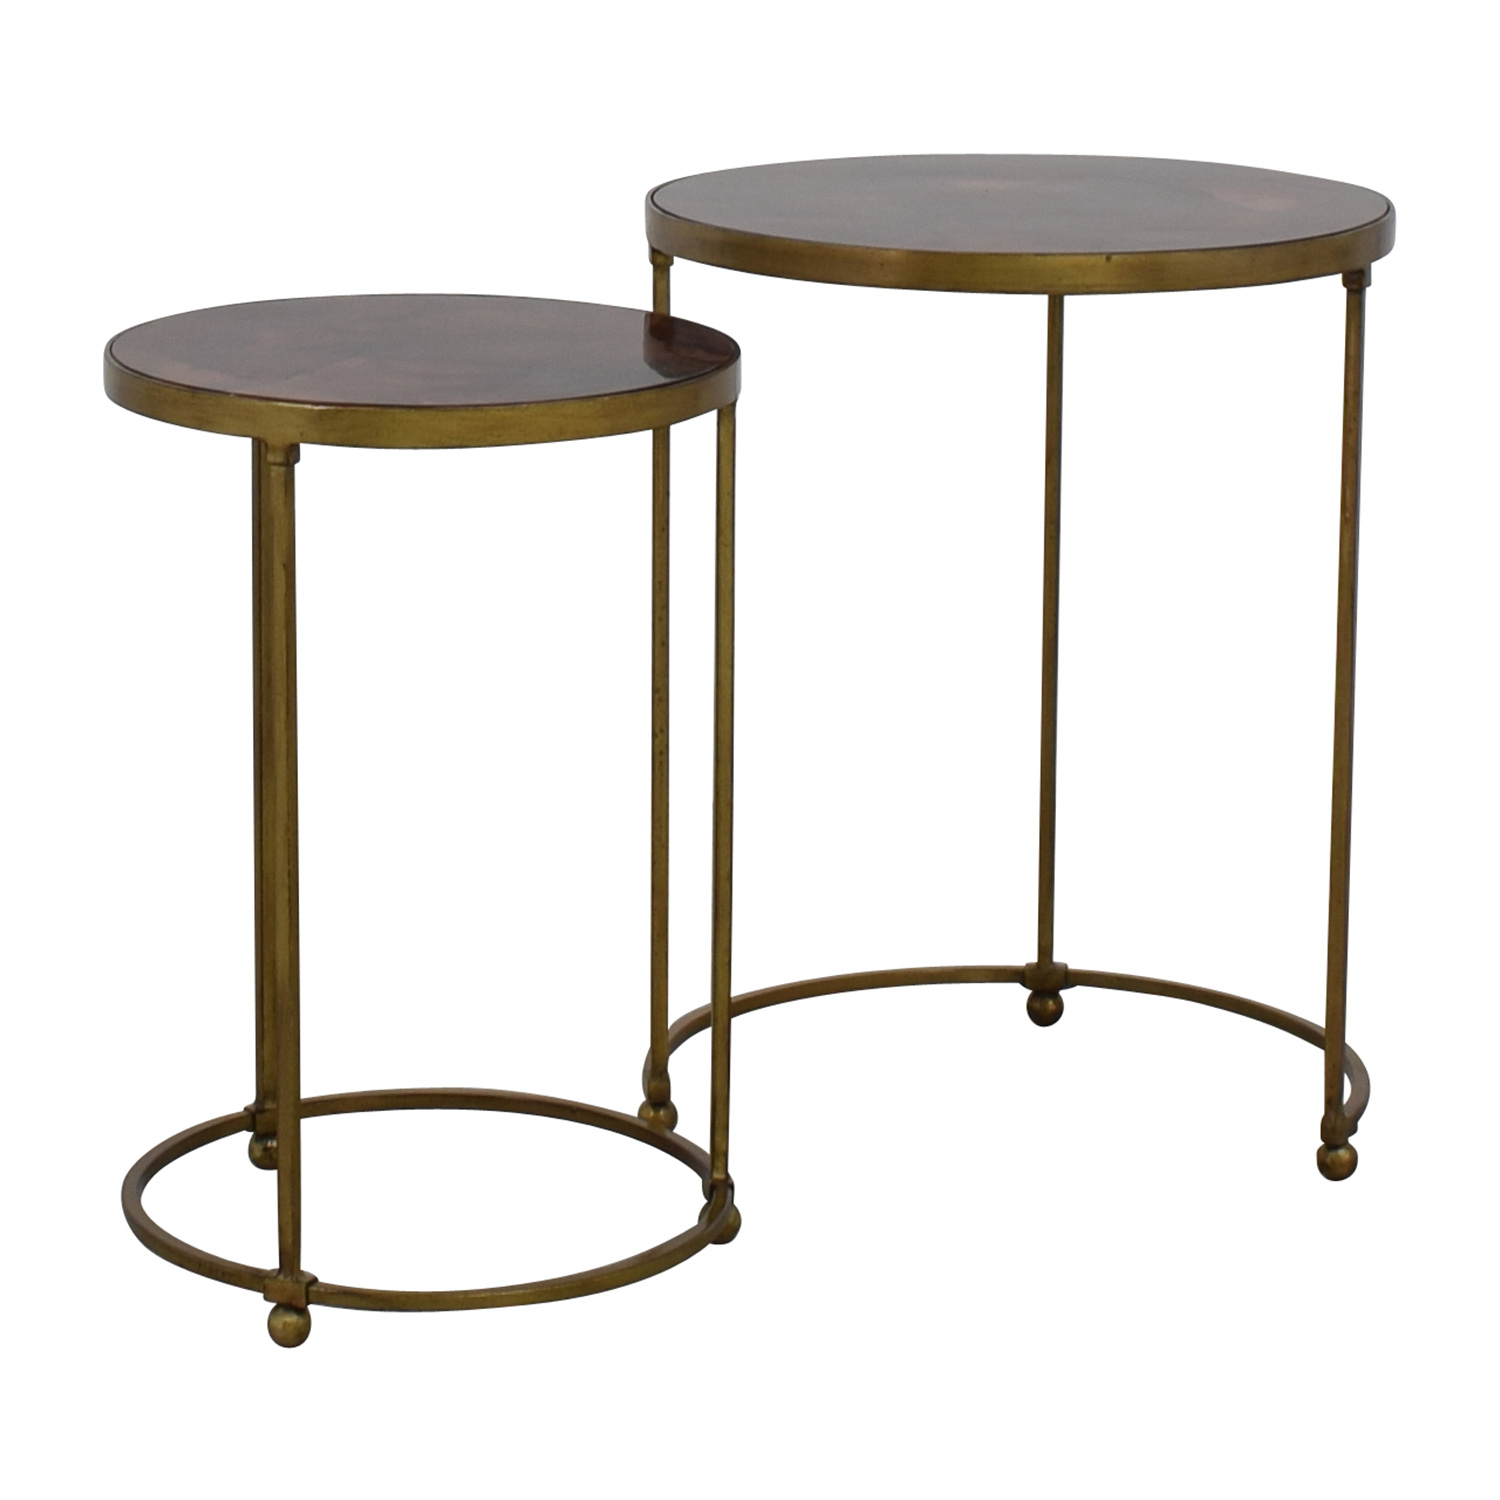 the perfect real round brass end table jockboymusic accent tables marble top coffee antique wood and white bedside small gold side nest full size excellent farmhouse with pipe